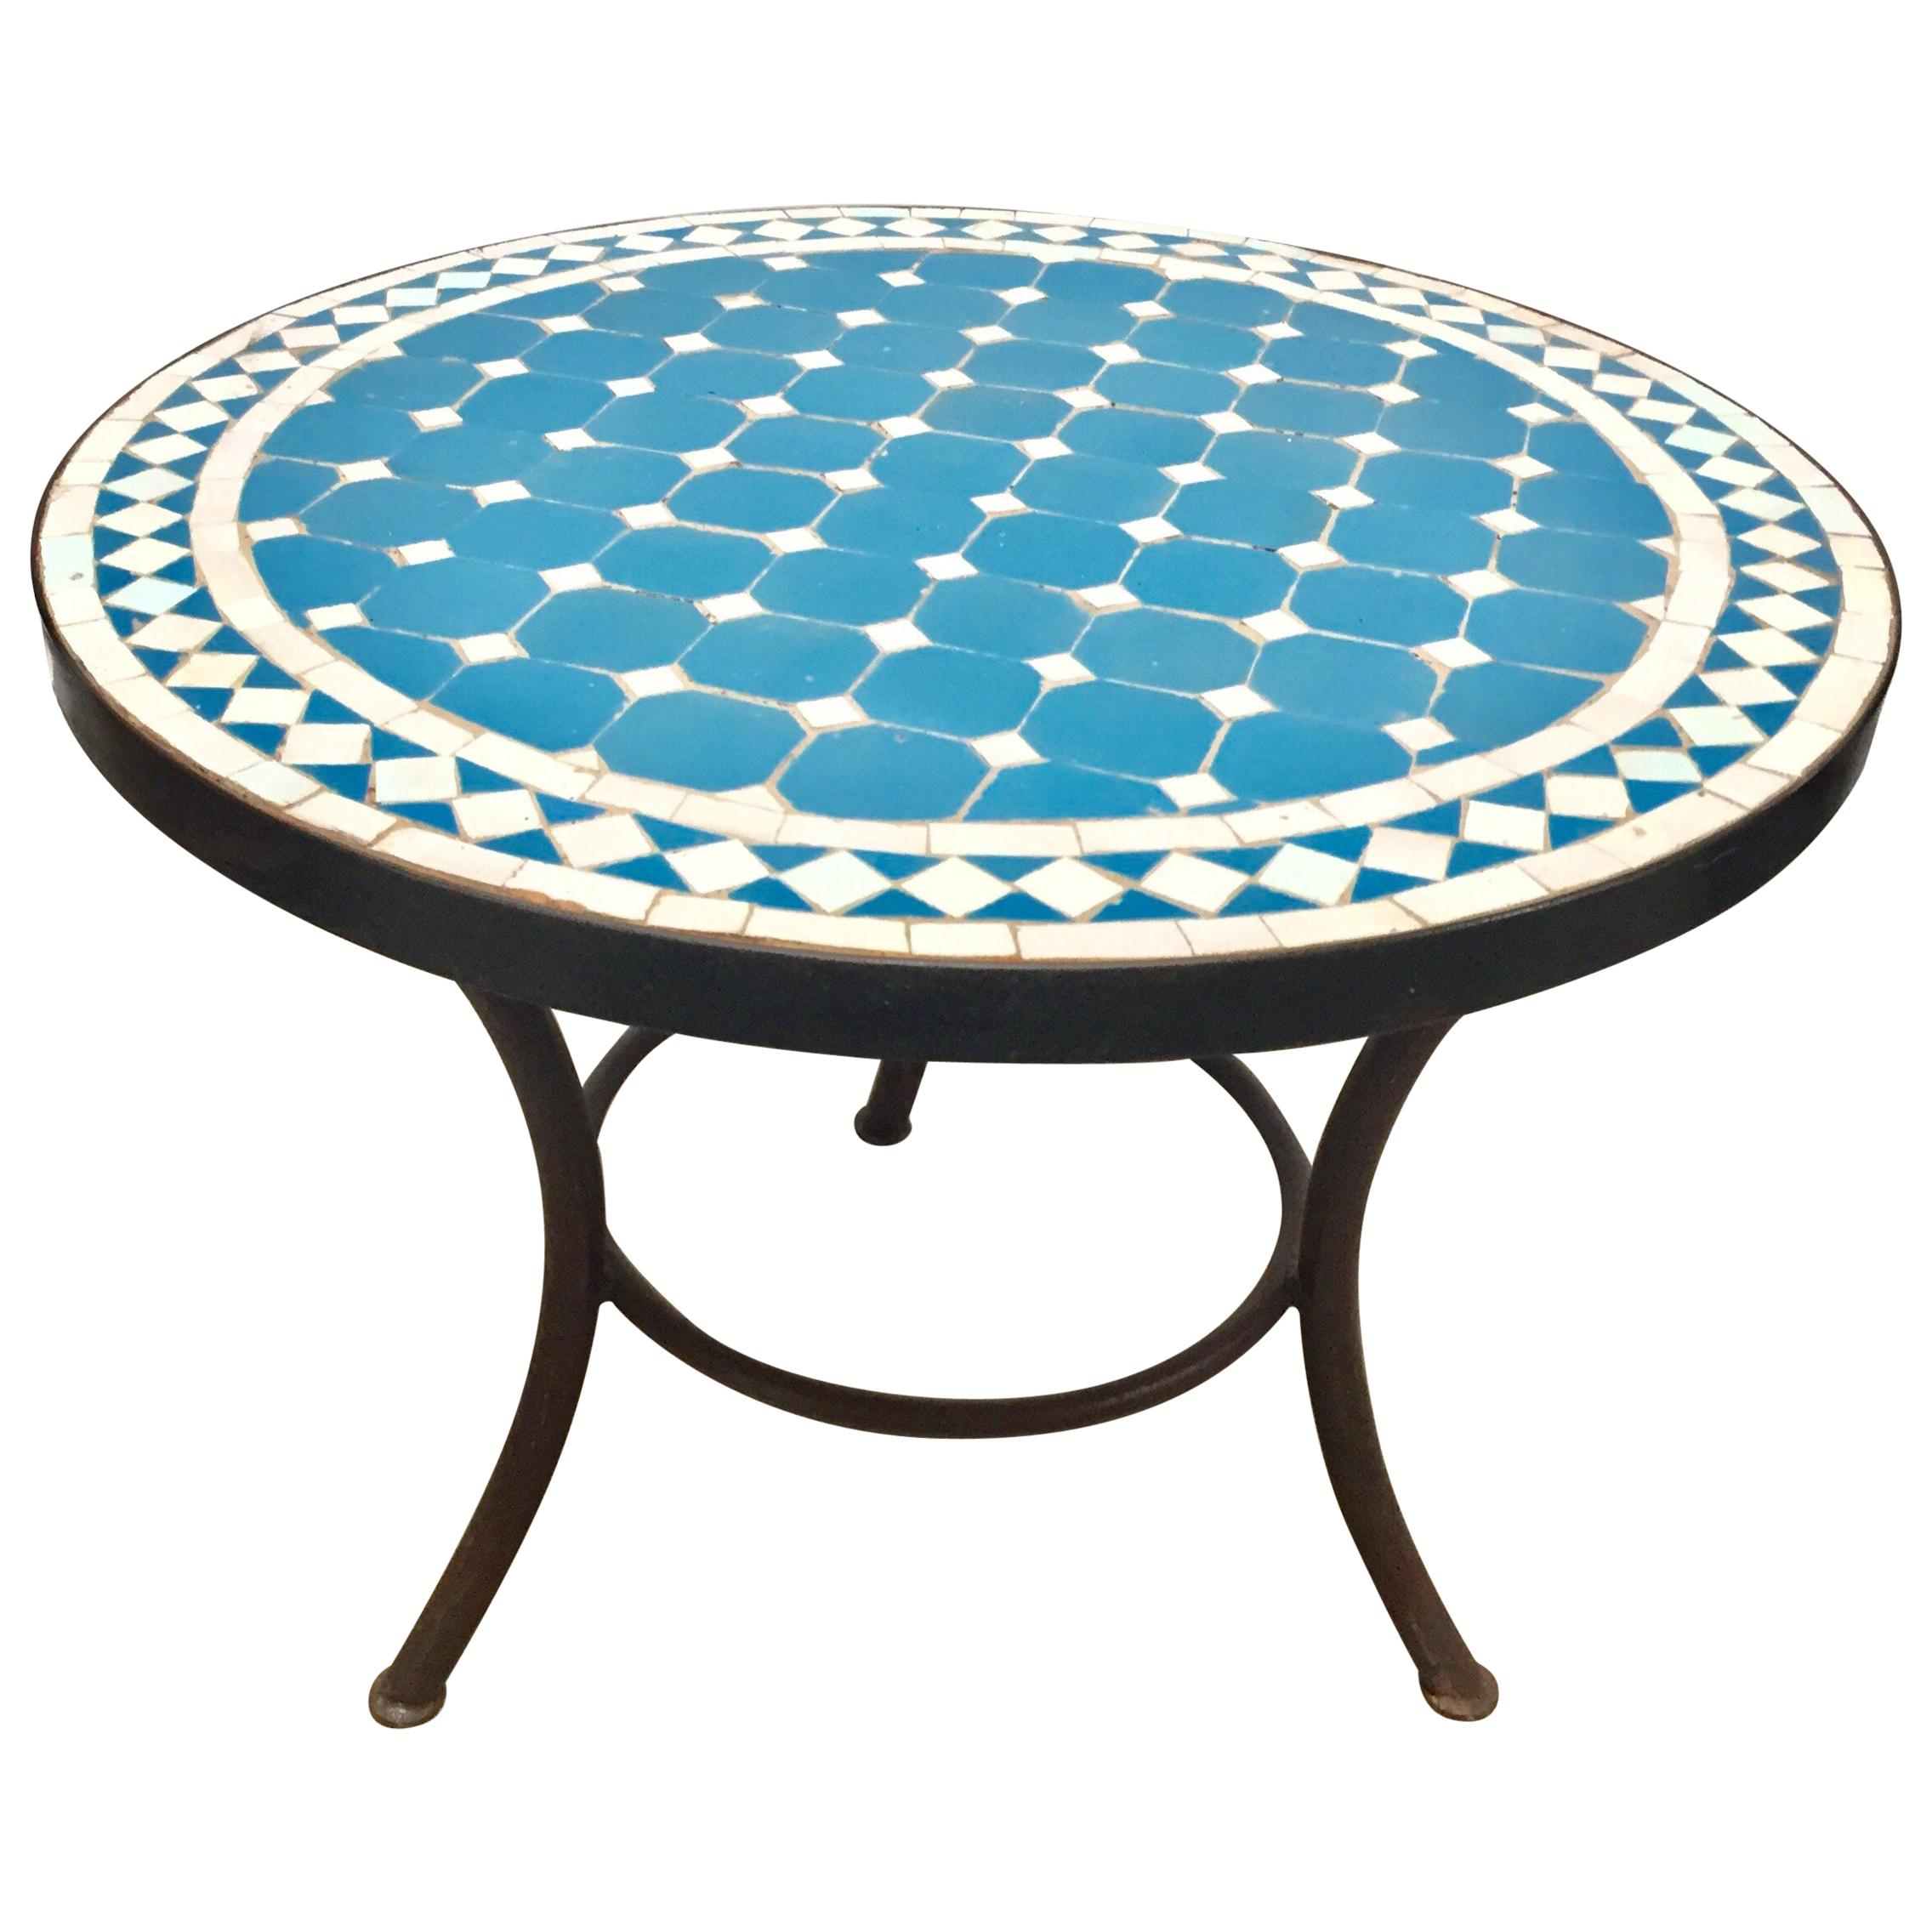 Moroccan Mosaic Outdoor Blue Tile Side Table on Low Iron ... on Outdoor Living Iron Mosaic id=28505